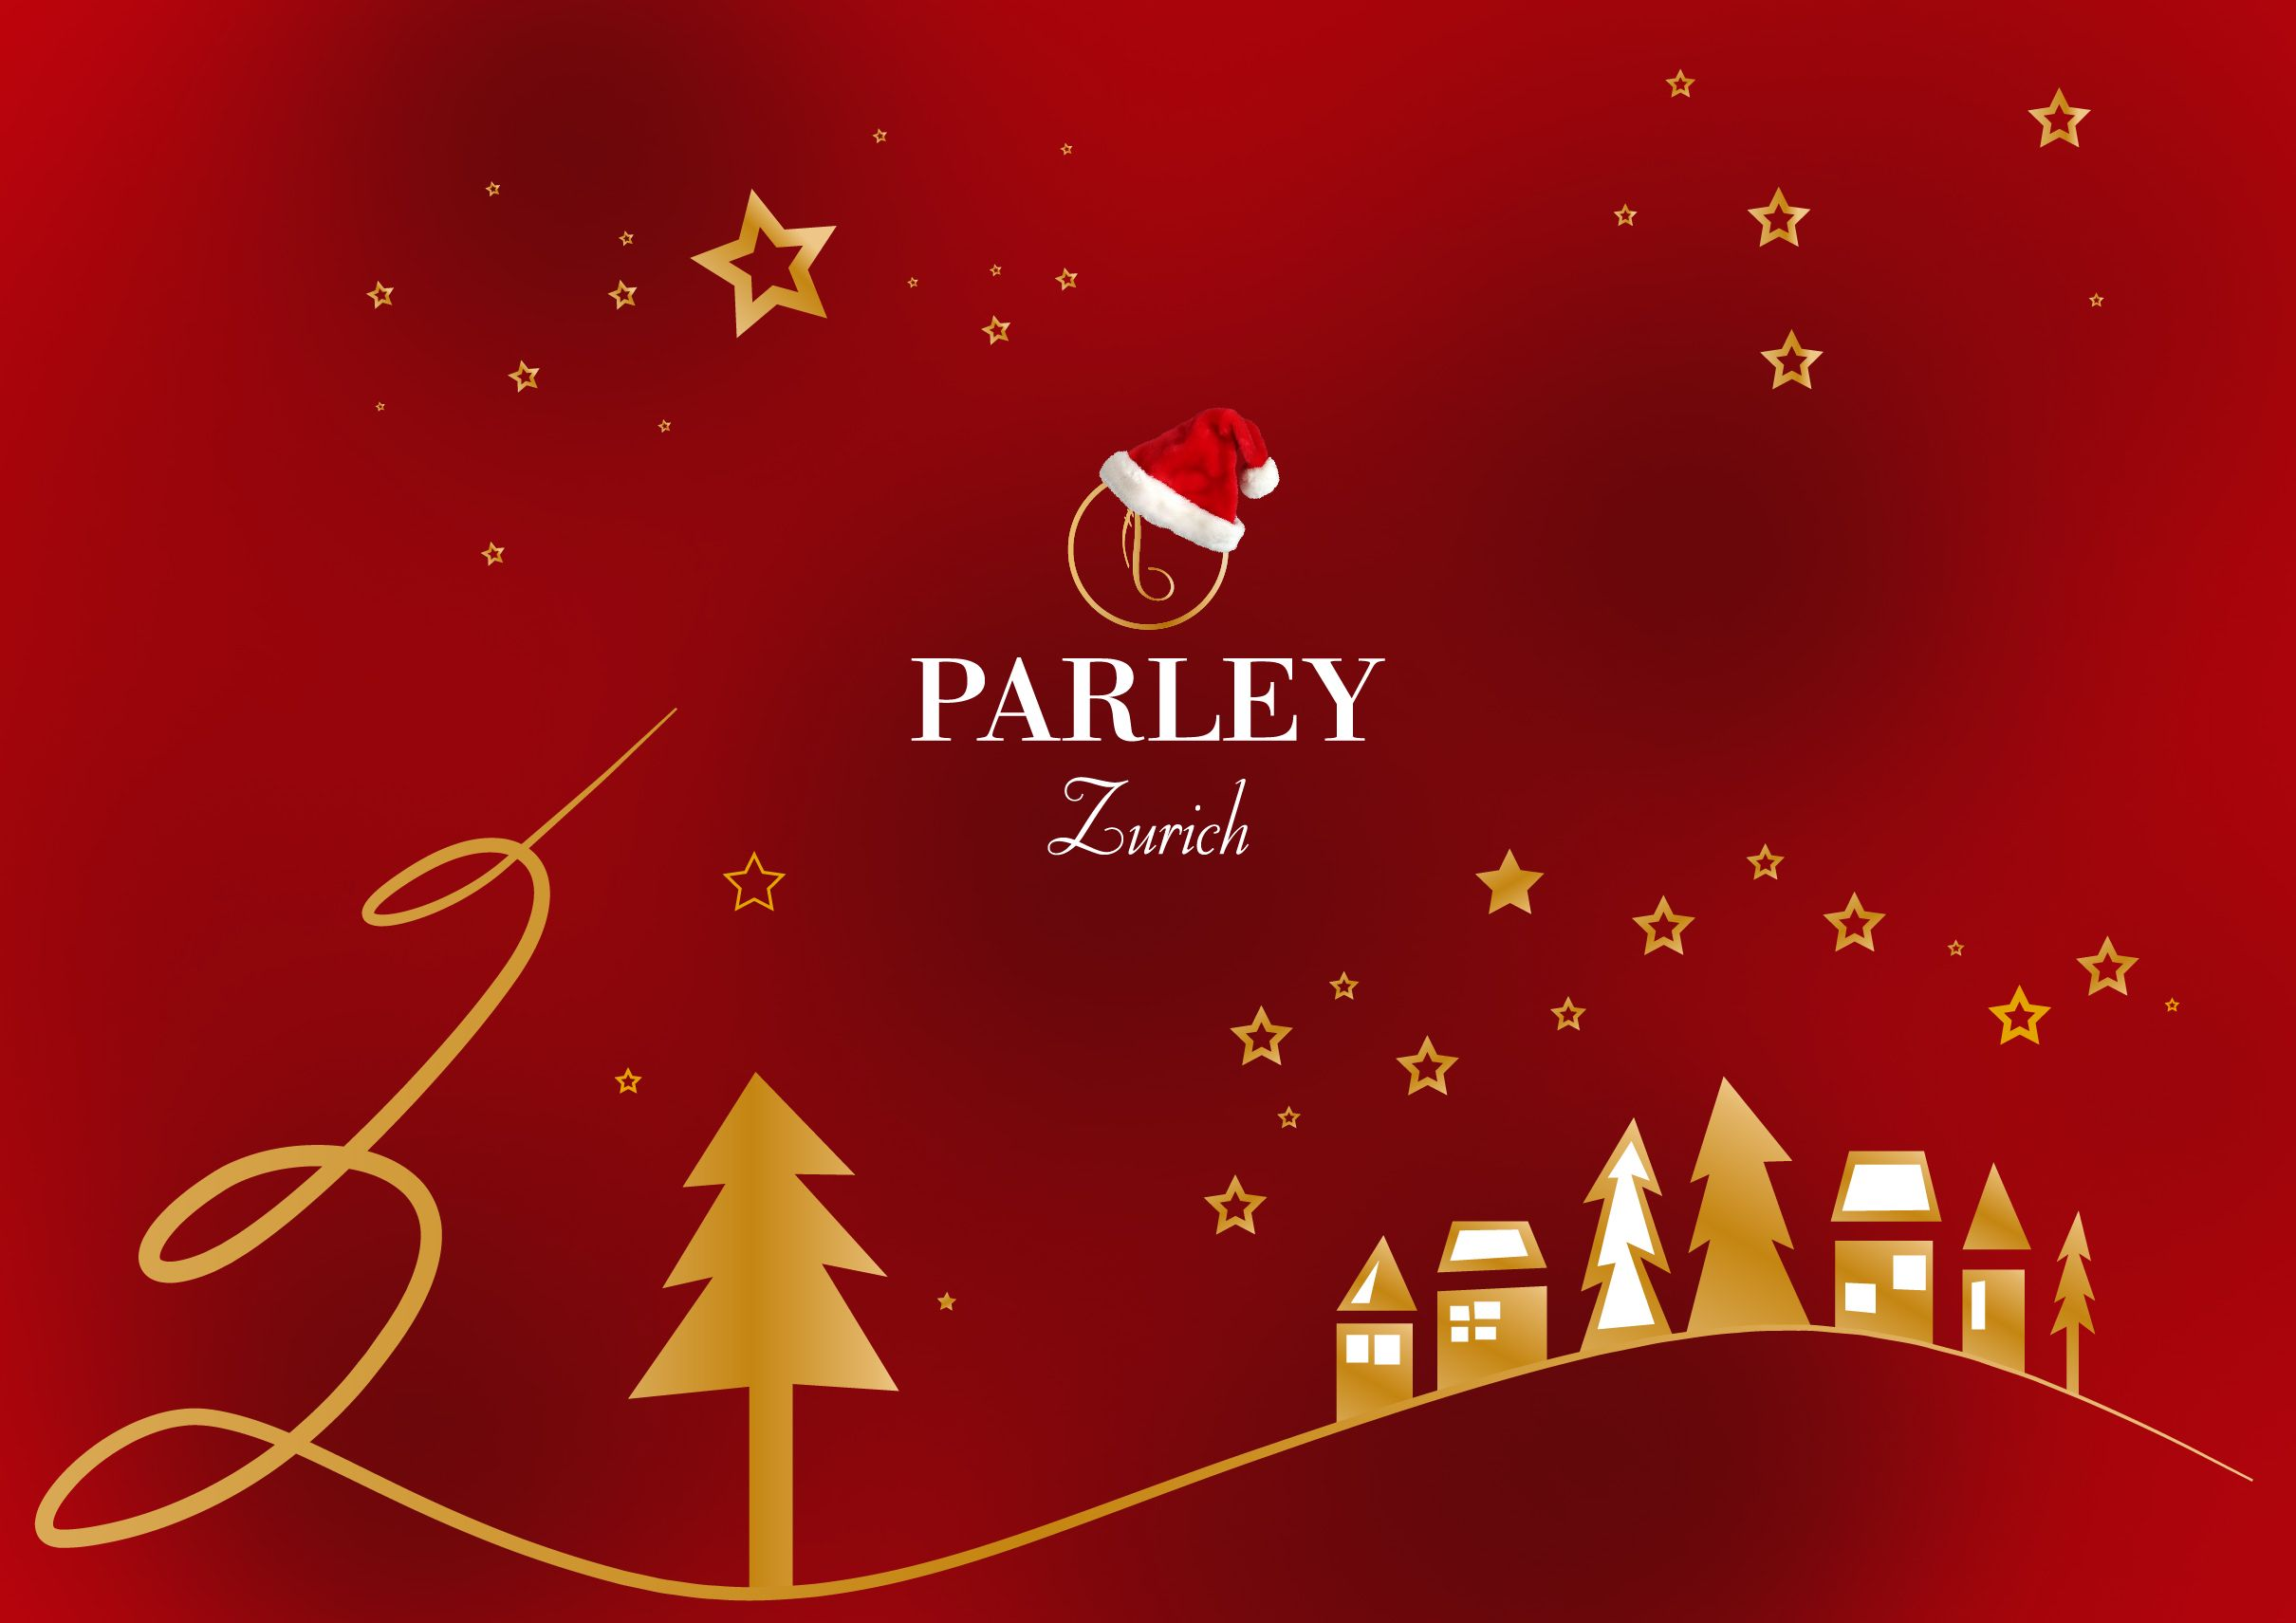 Parley Zurich Wishes A Merry Christmas To All Its Customers